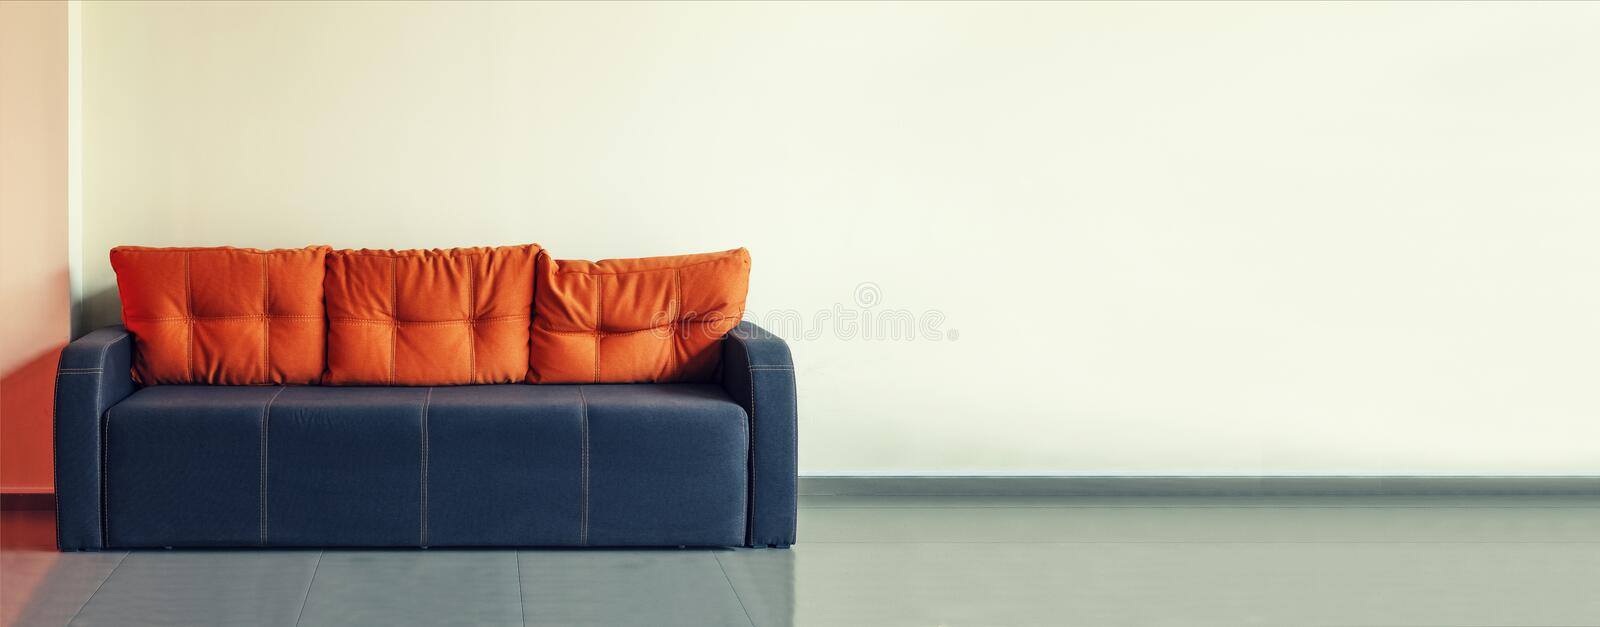 Sofa, interior design, office. Empty waiting room with a modern blue sofa with yellow cushions in front of the door and a clock on royalty free stock images